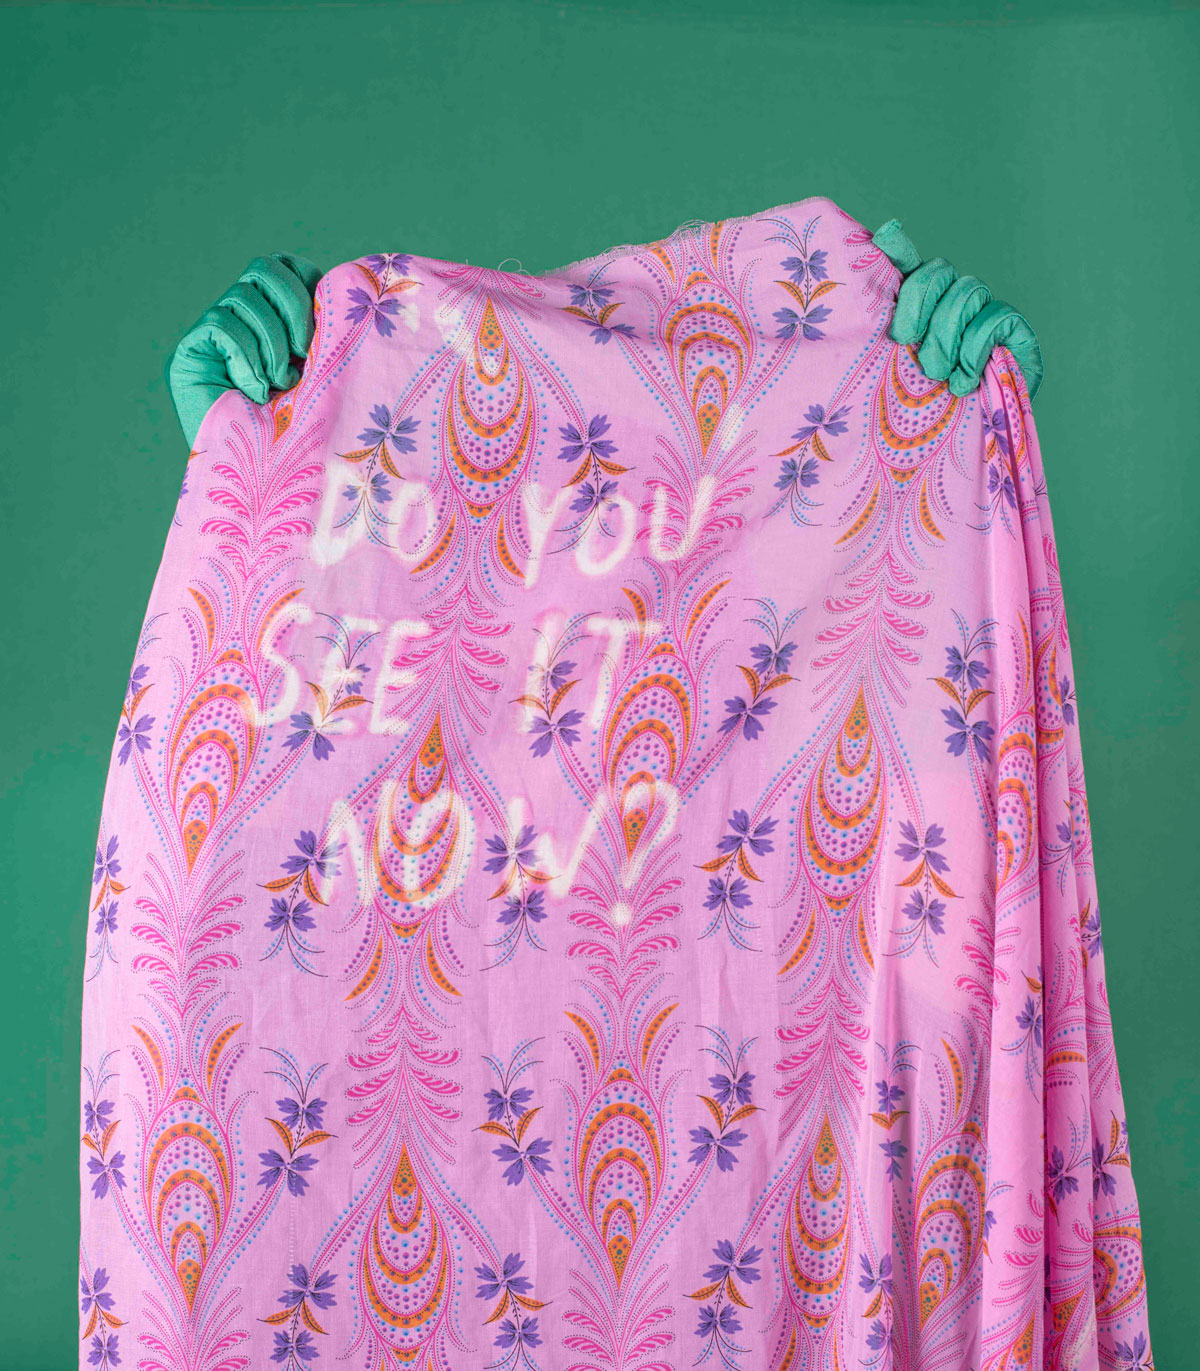 Green hands hold up a pink-patterned fabric with the text: Do you see it now?